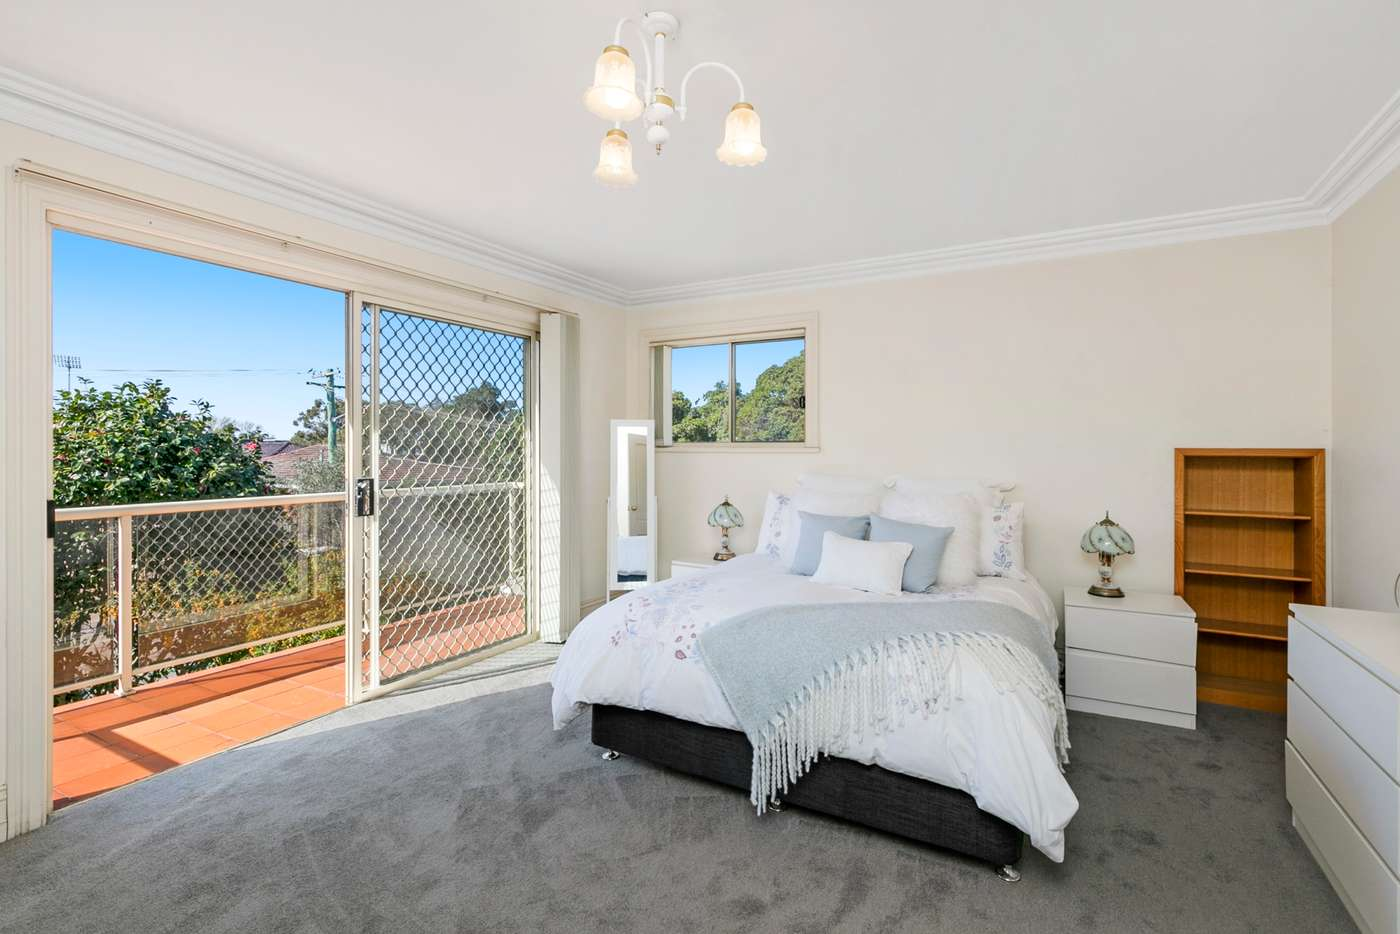 Fifth view of Homely house listing, 32 Consul Road, Brookvale NSW 2100